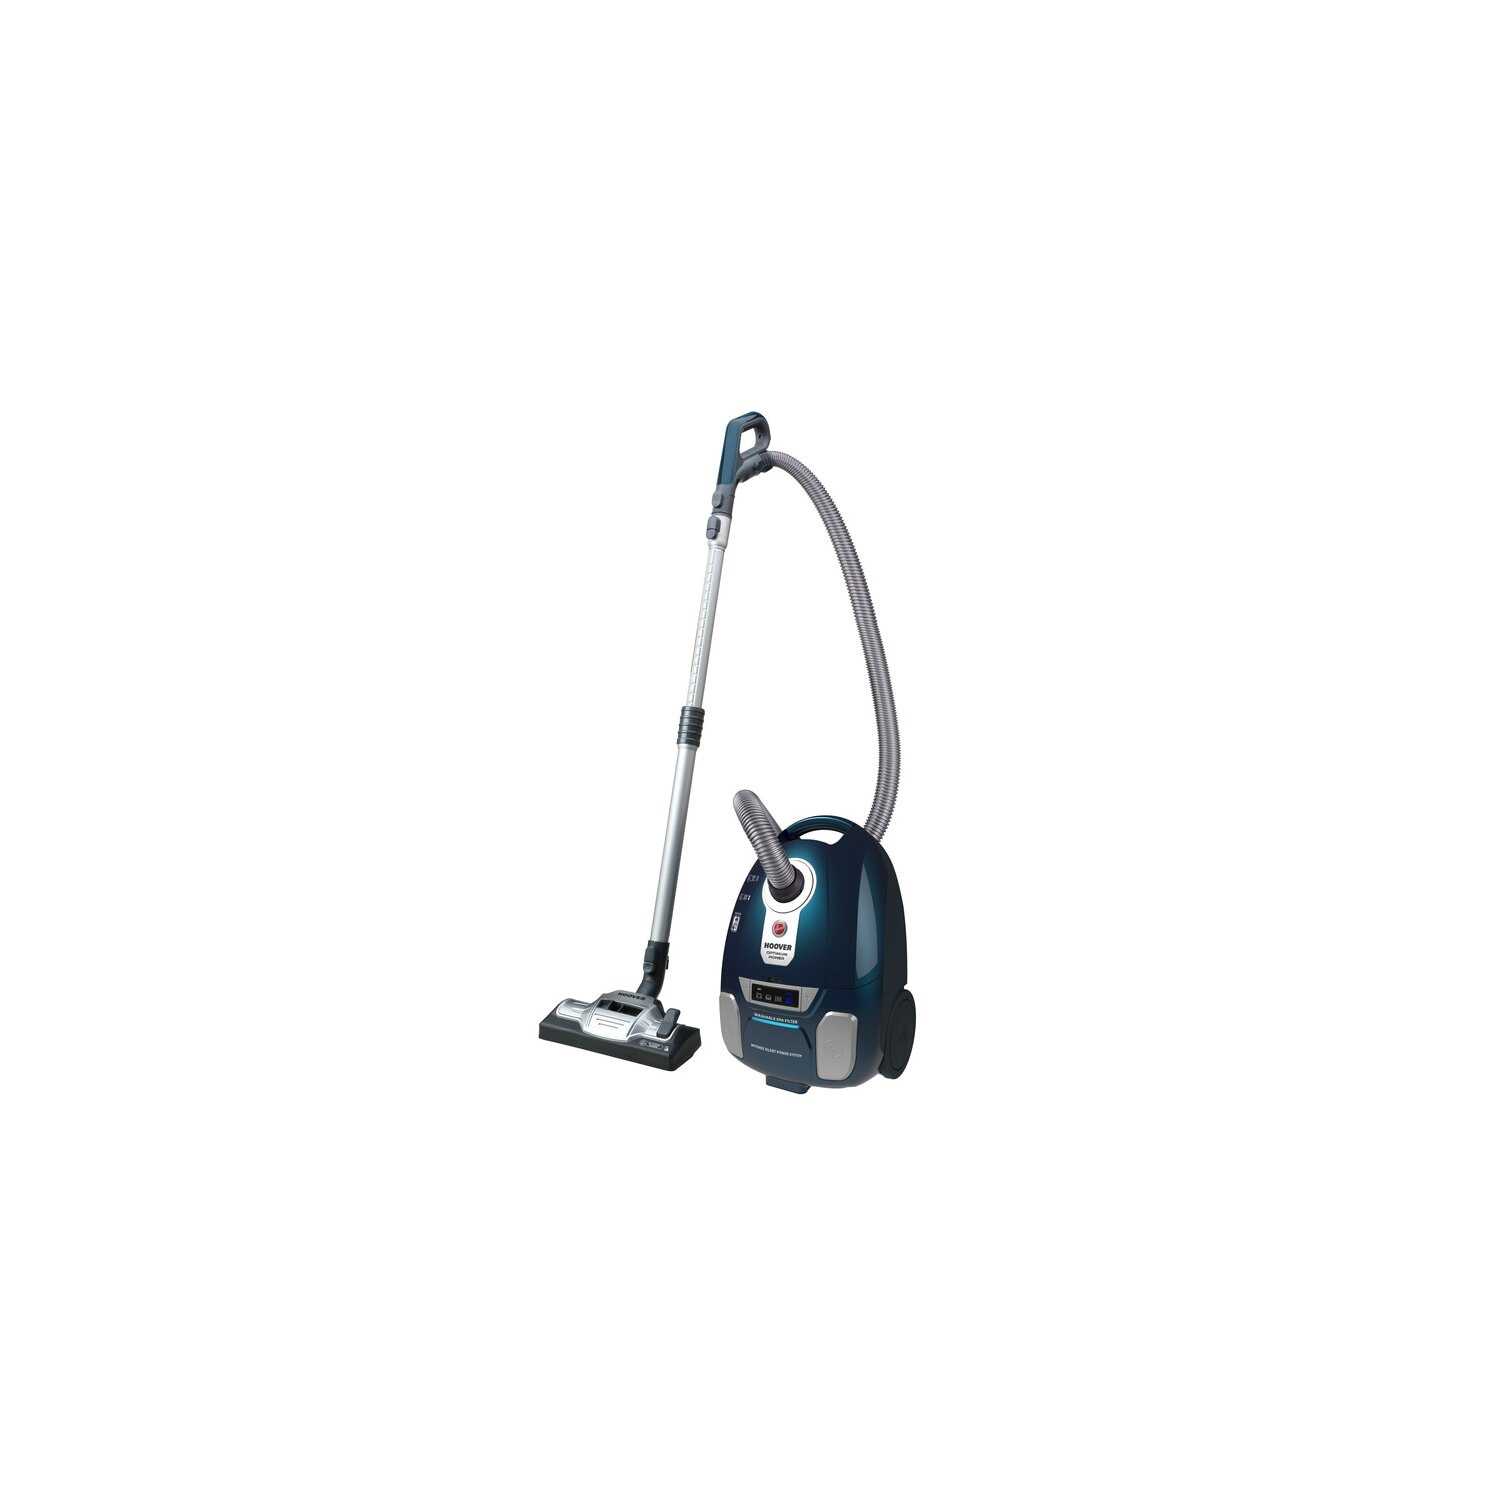 Odkurzacz HOOVER OP60ALG 011 Optimum Power